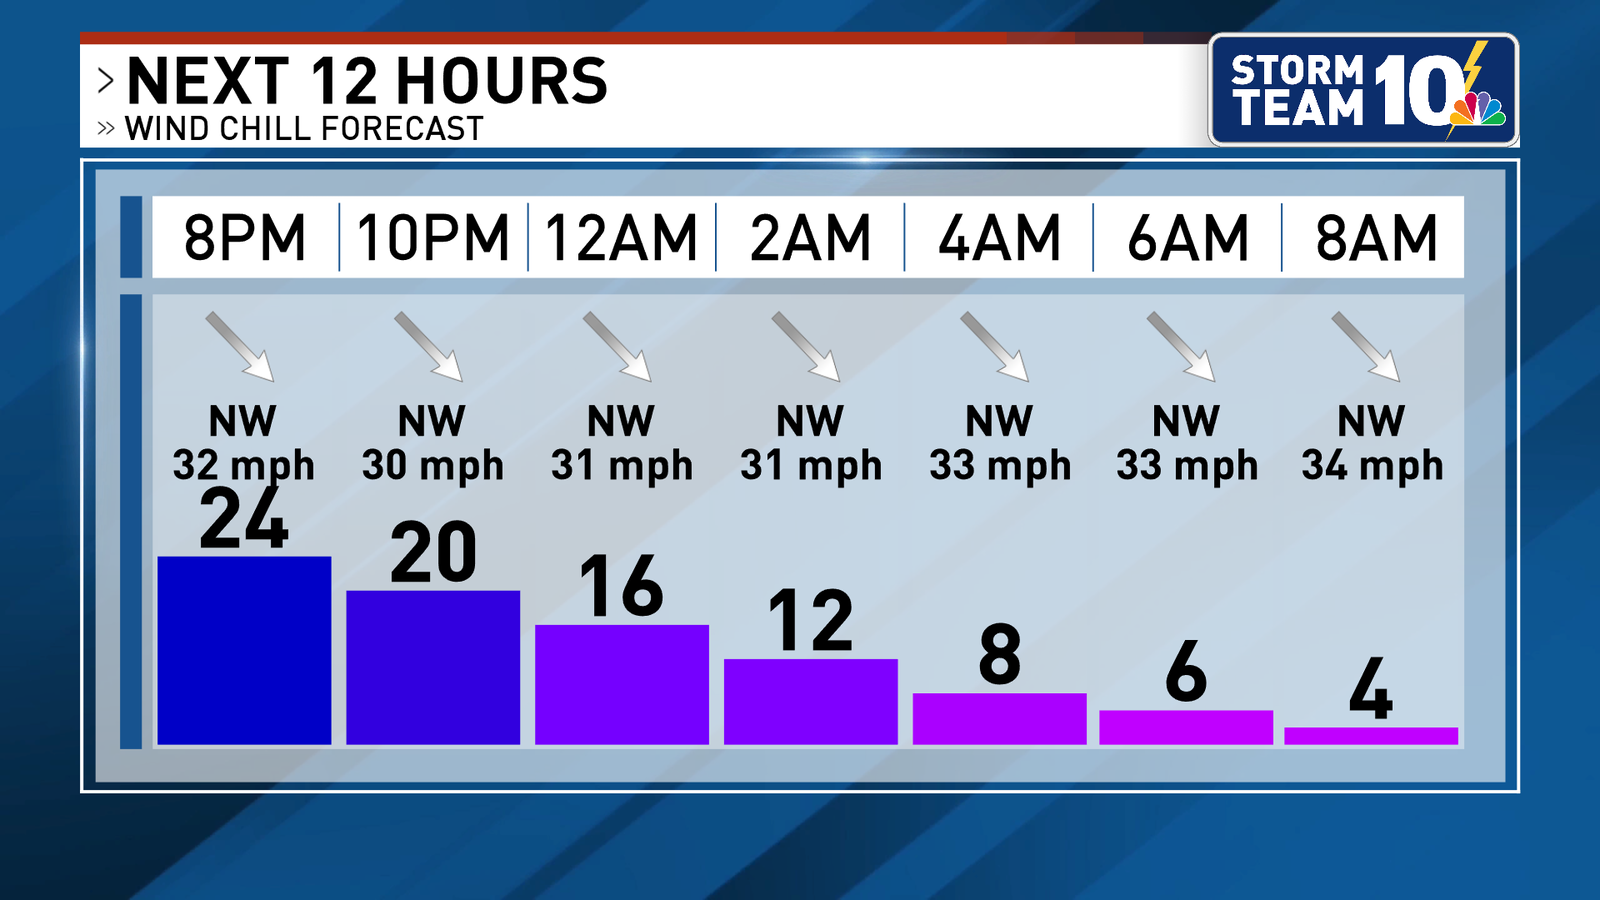 Wind Chill in the next 12 hours